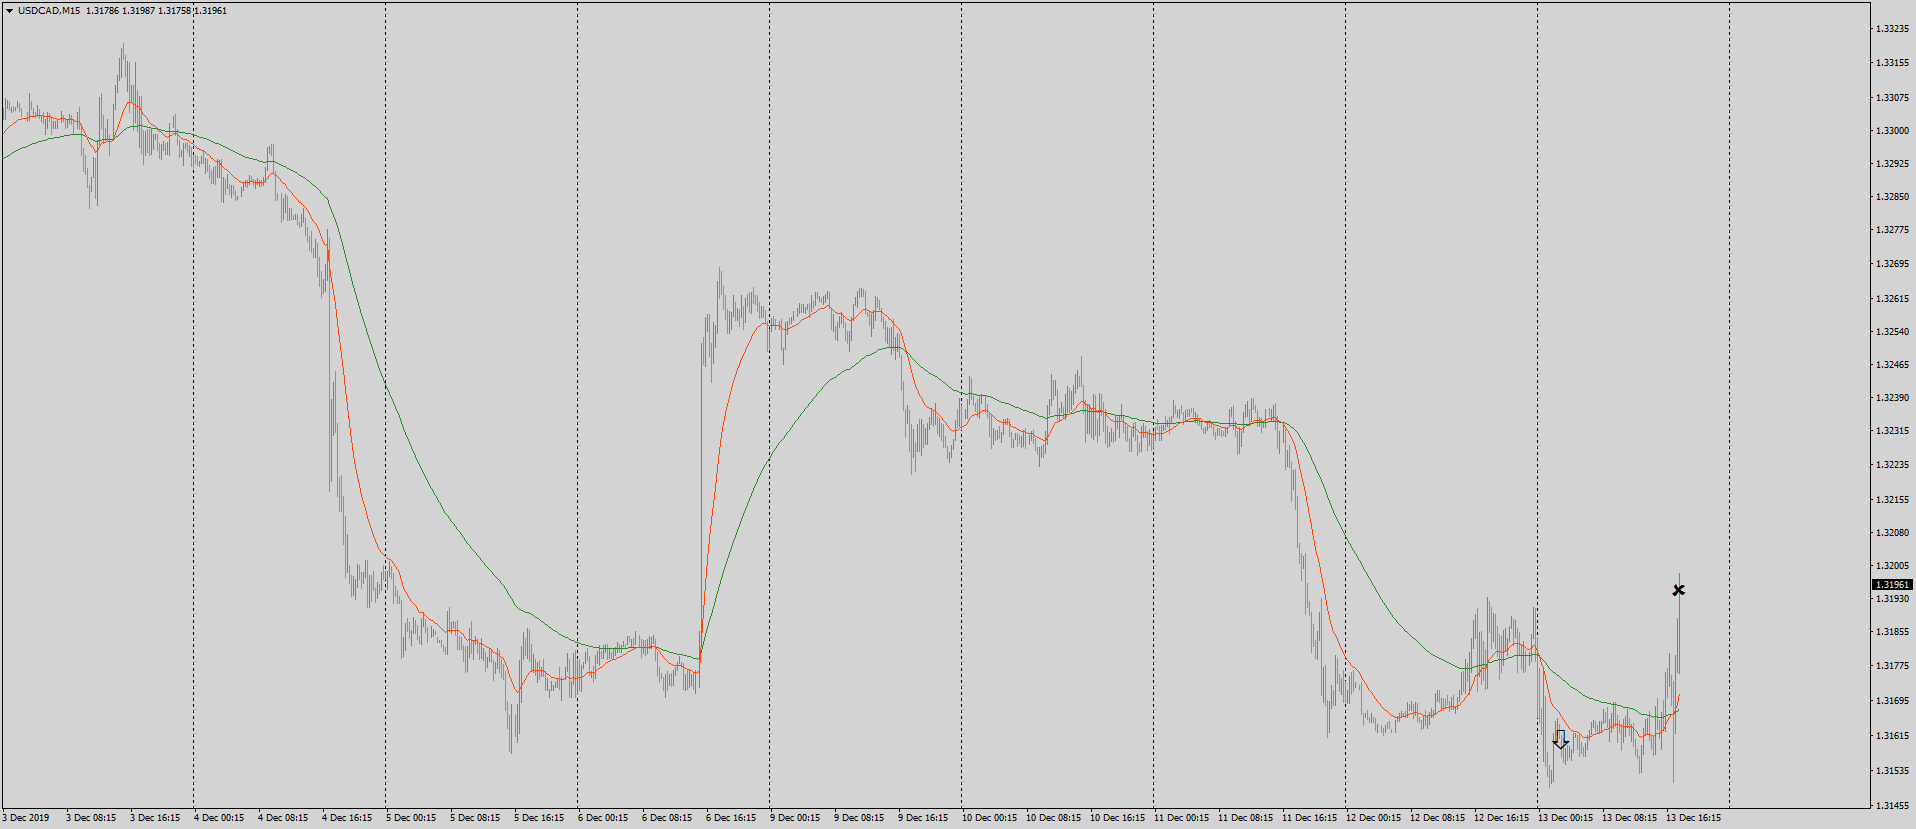 19-12-14-usdcad-m15-tradexfin-limited.png